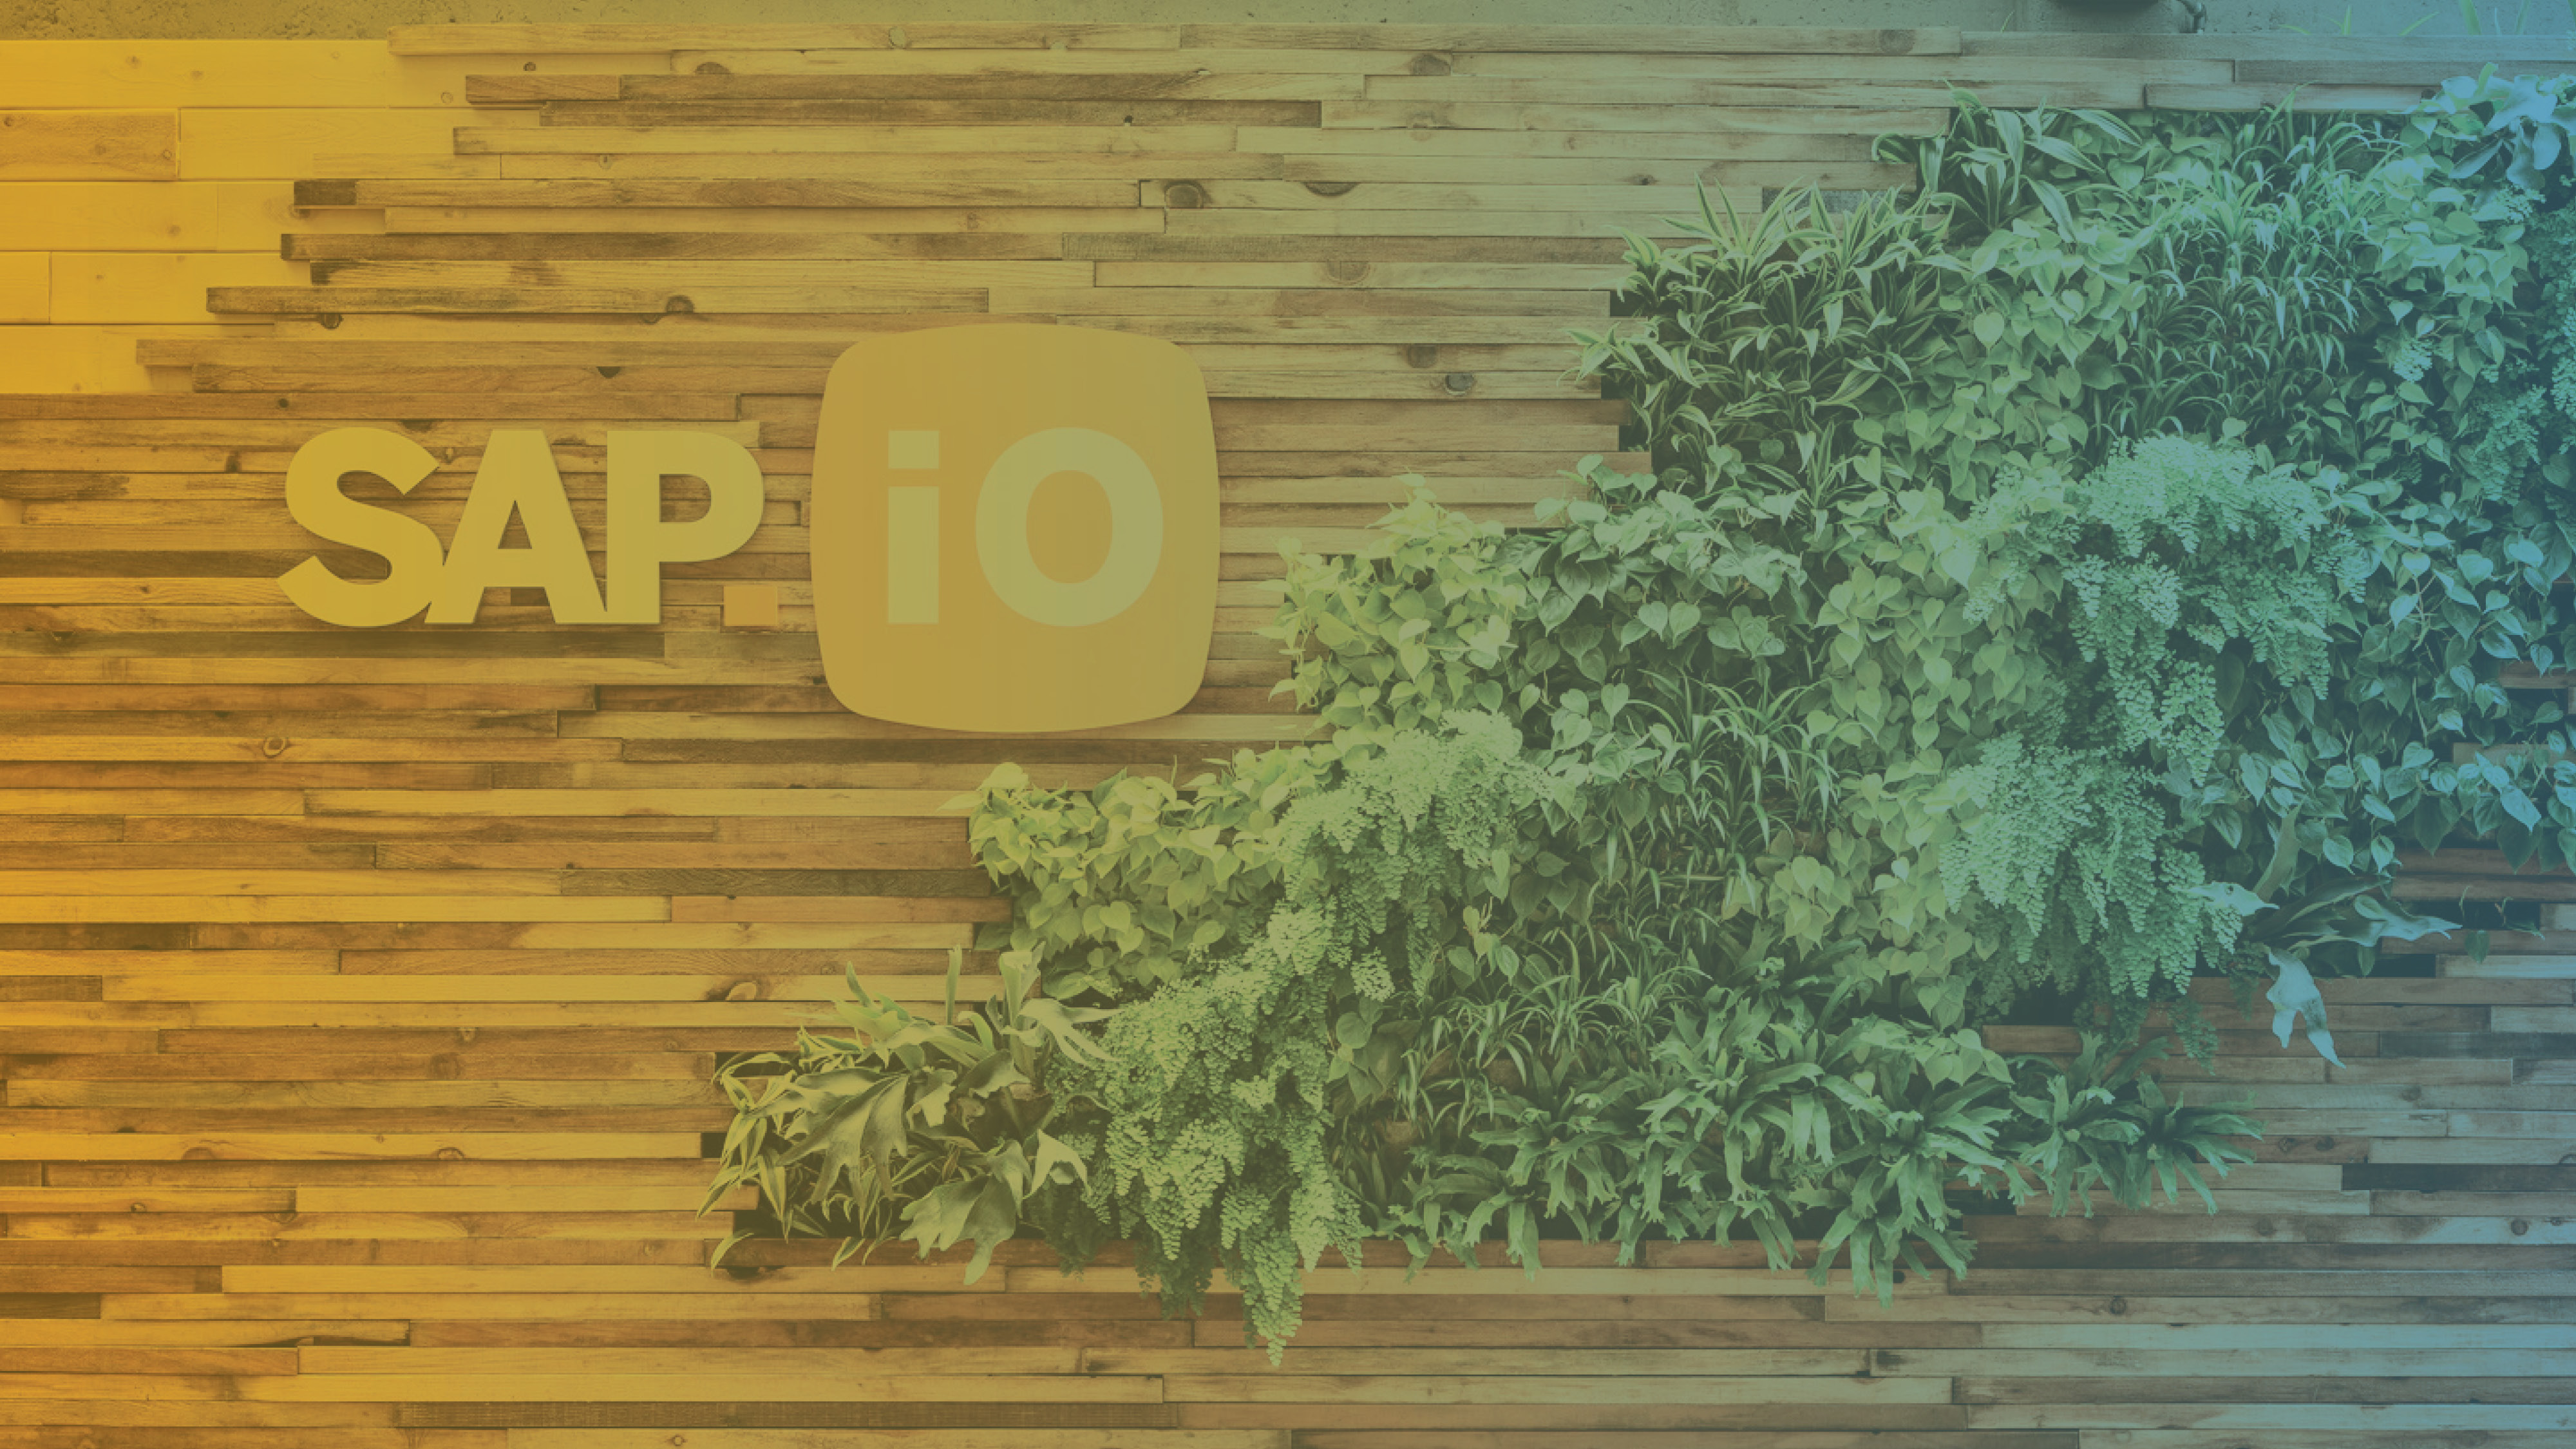 SAP.iO: Why 3 is Key to SAP's Startup Wins